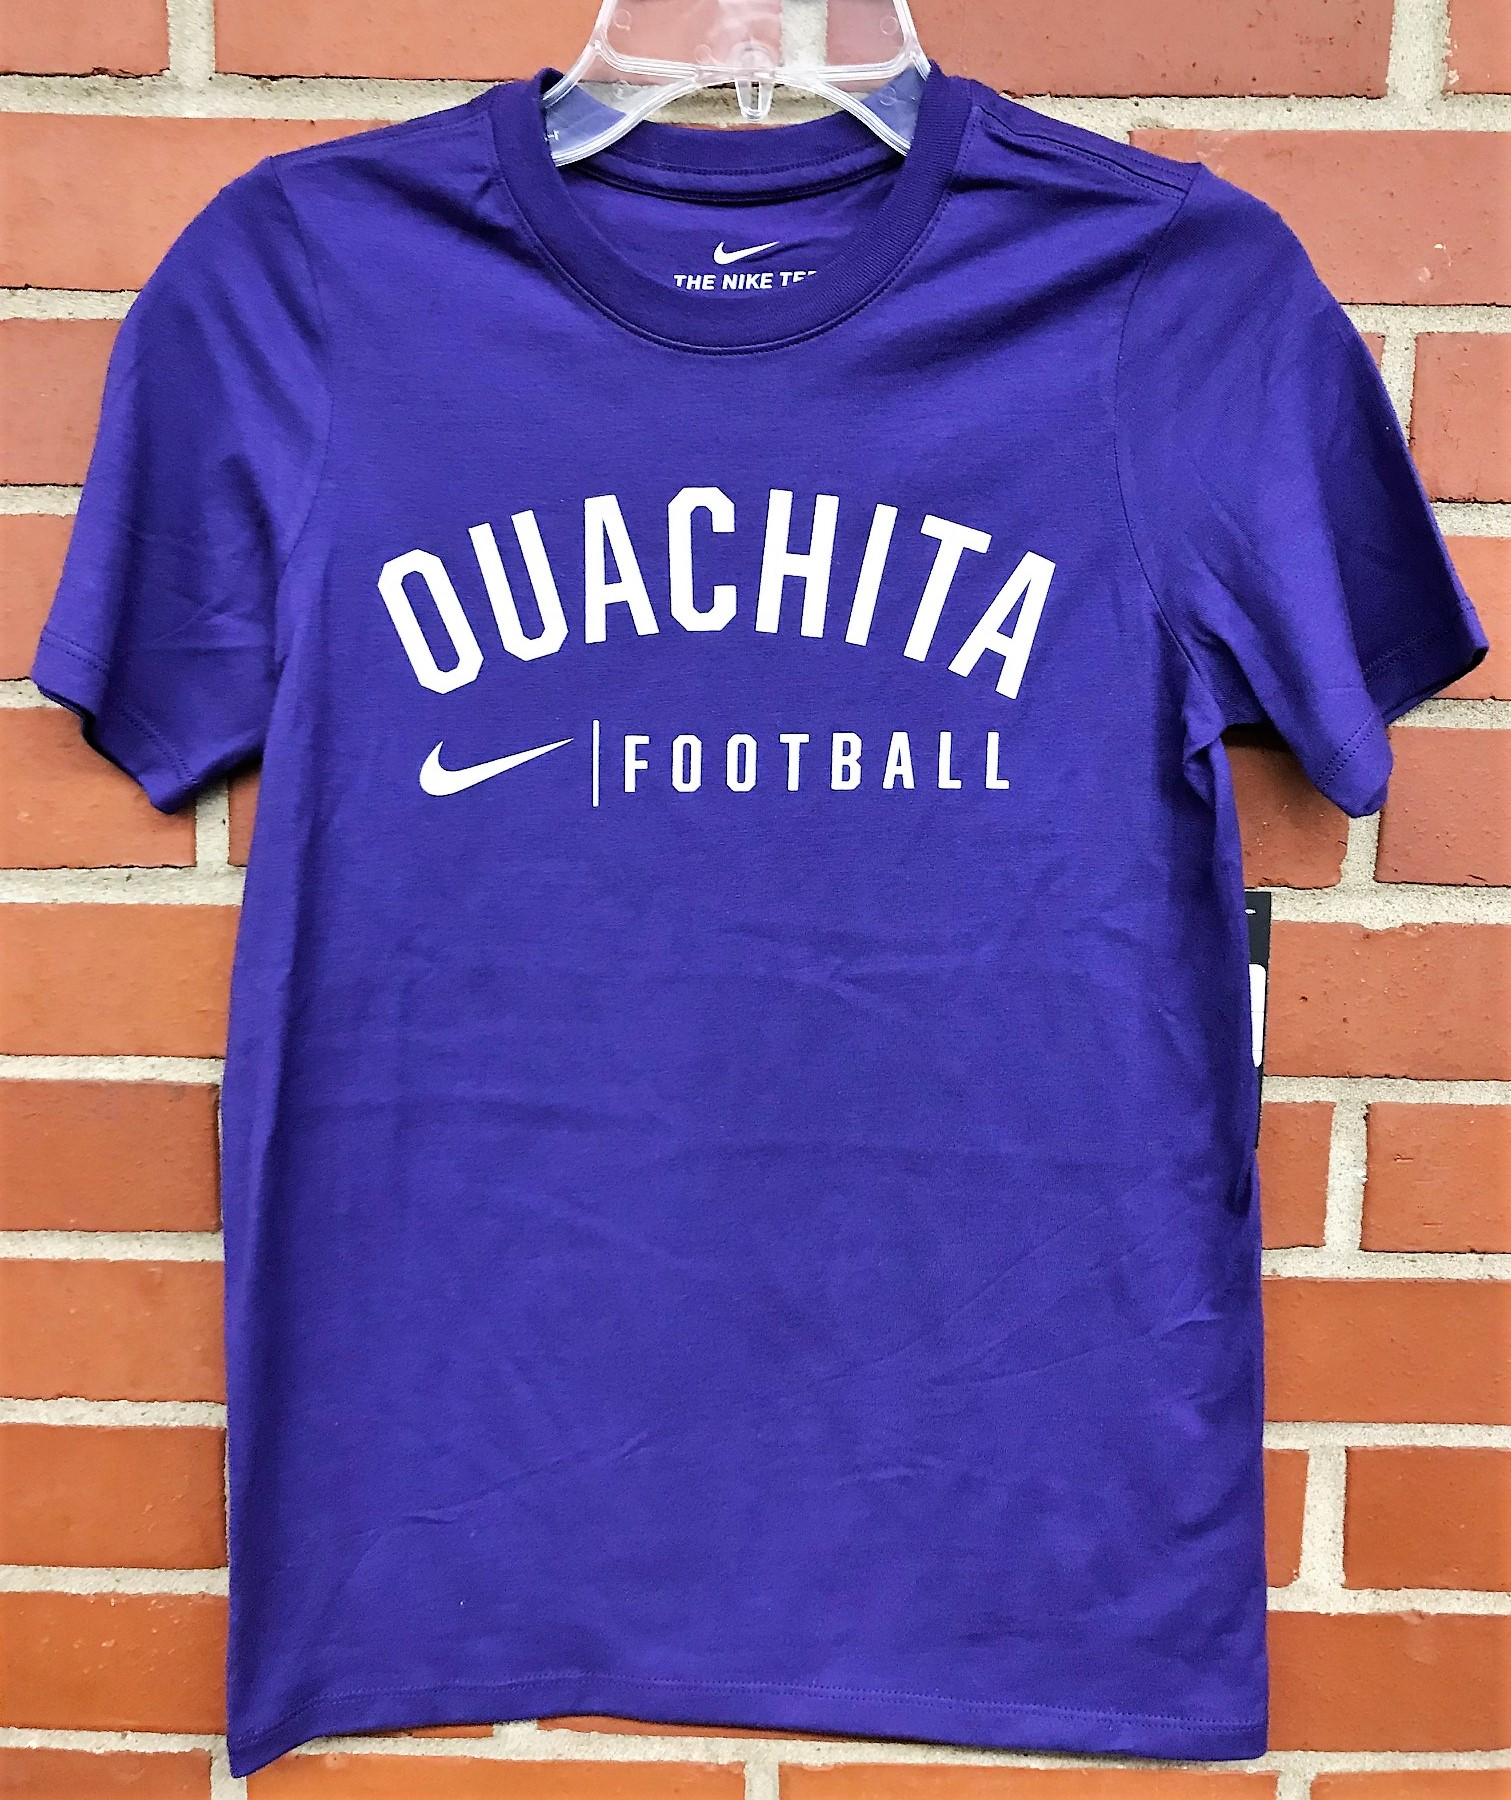 OUACHITA FOOTBALL YOUTH TEE